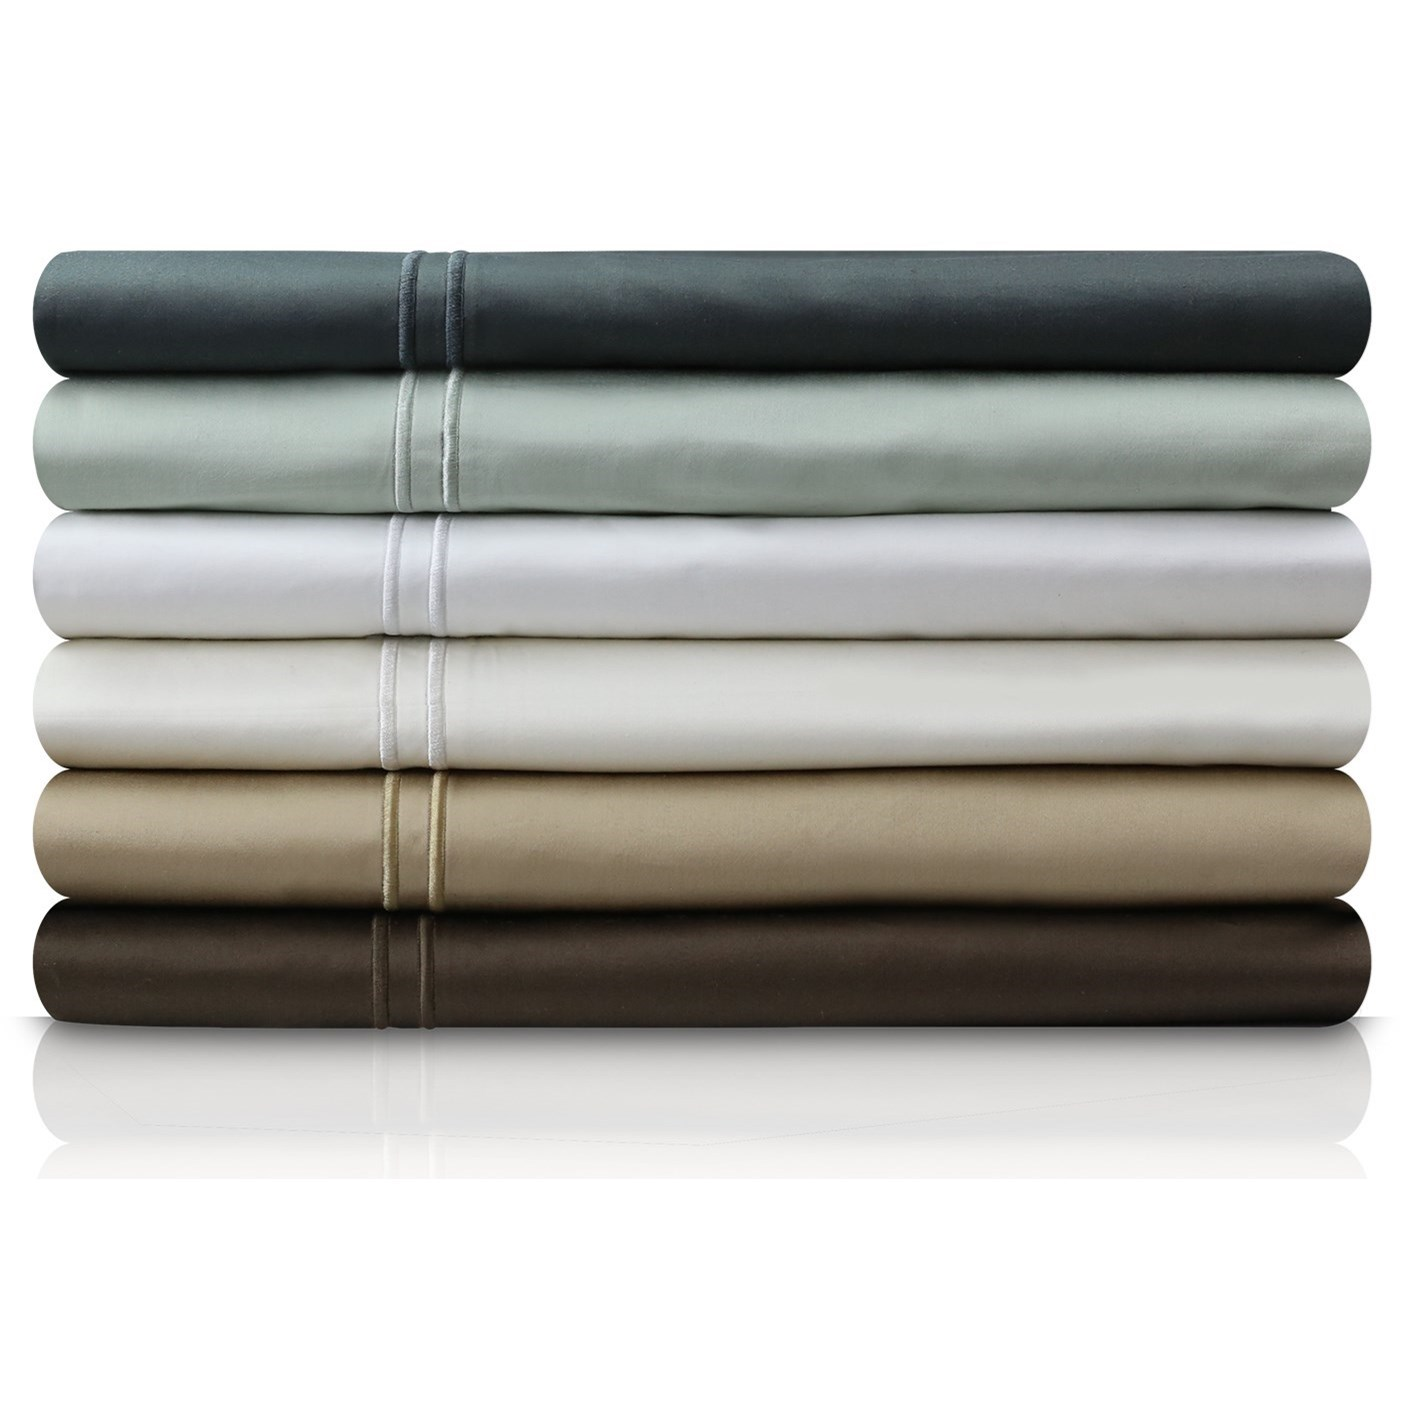 Malouf Egyptian Cotton Queen 400 TC Egyptian Cotton Pillowcases  - Item Number: MA04QQKHPC